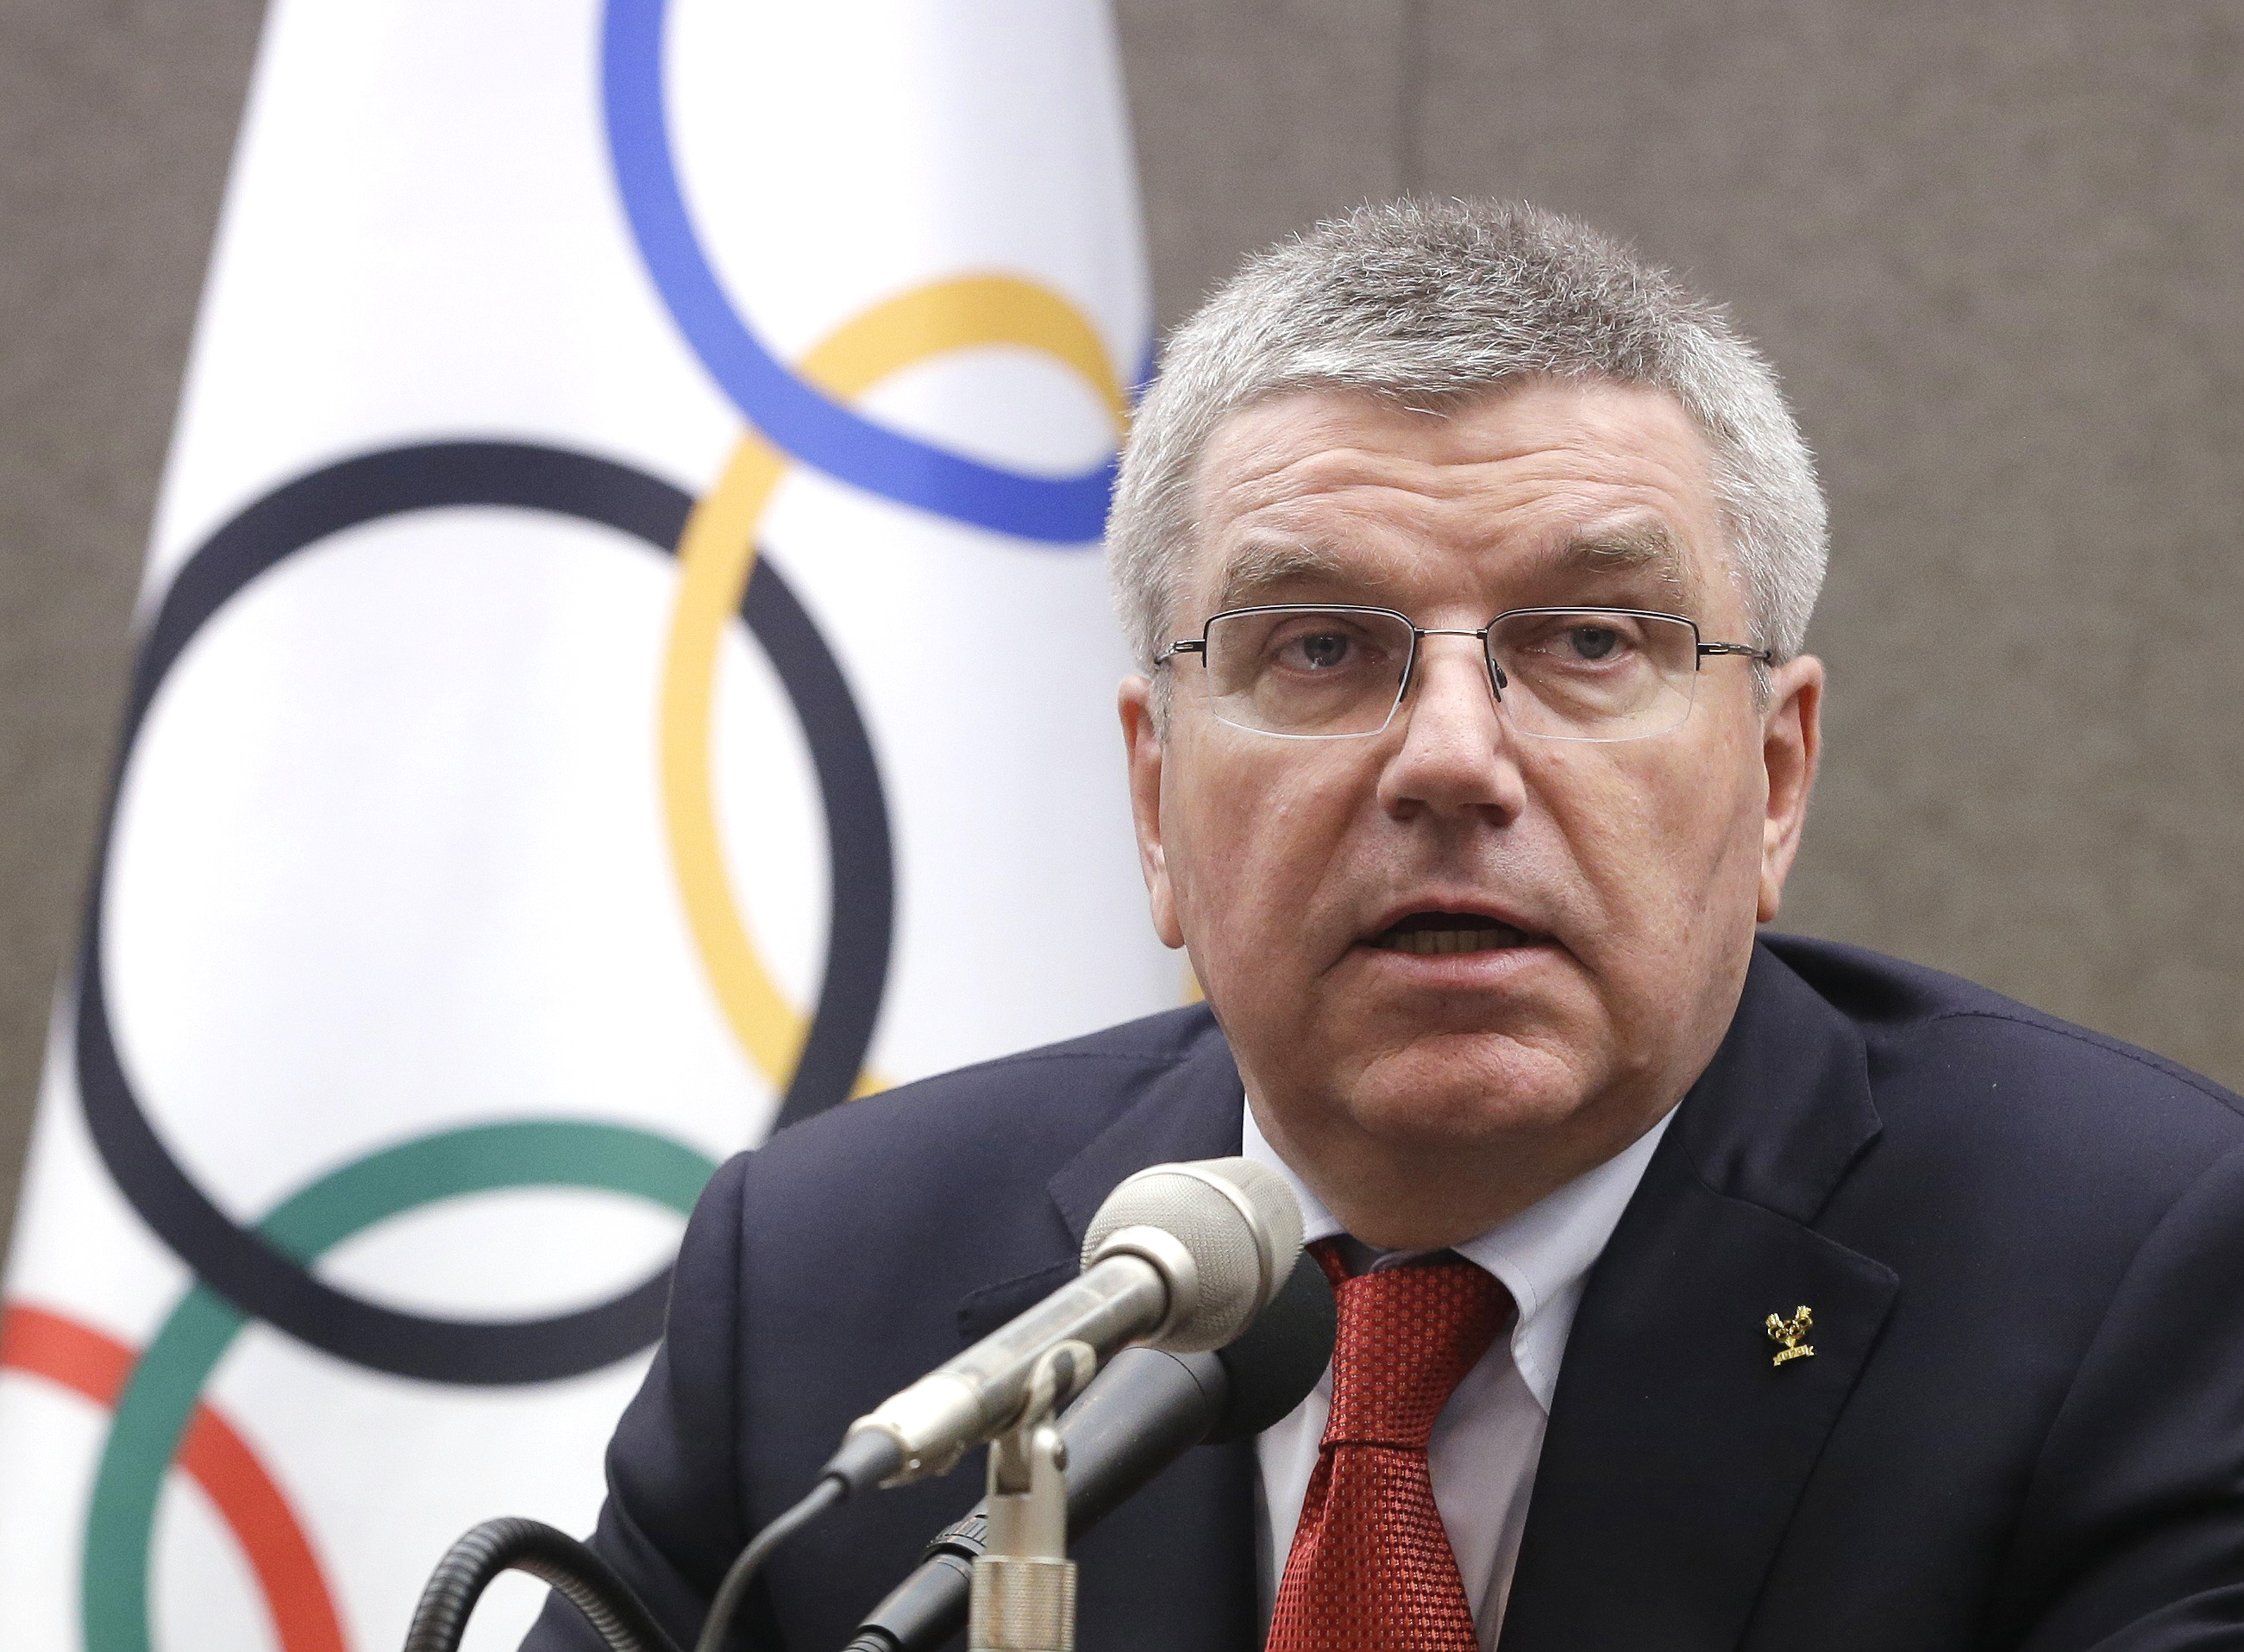 FILE - In this Wednesday, Aug. 19, 2015 file photo, International Olympic Committee (IOC) President Thomas Bach speaks during a press conference in Seoul, South Korea. Russia's track and field athletes will be cleared to compete in the Olympics in Rio de